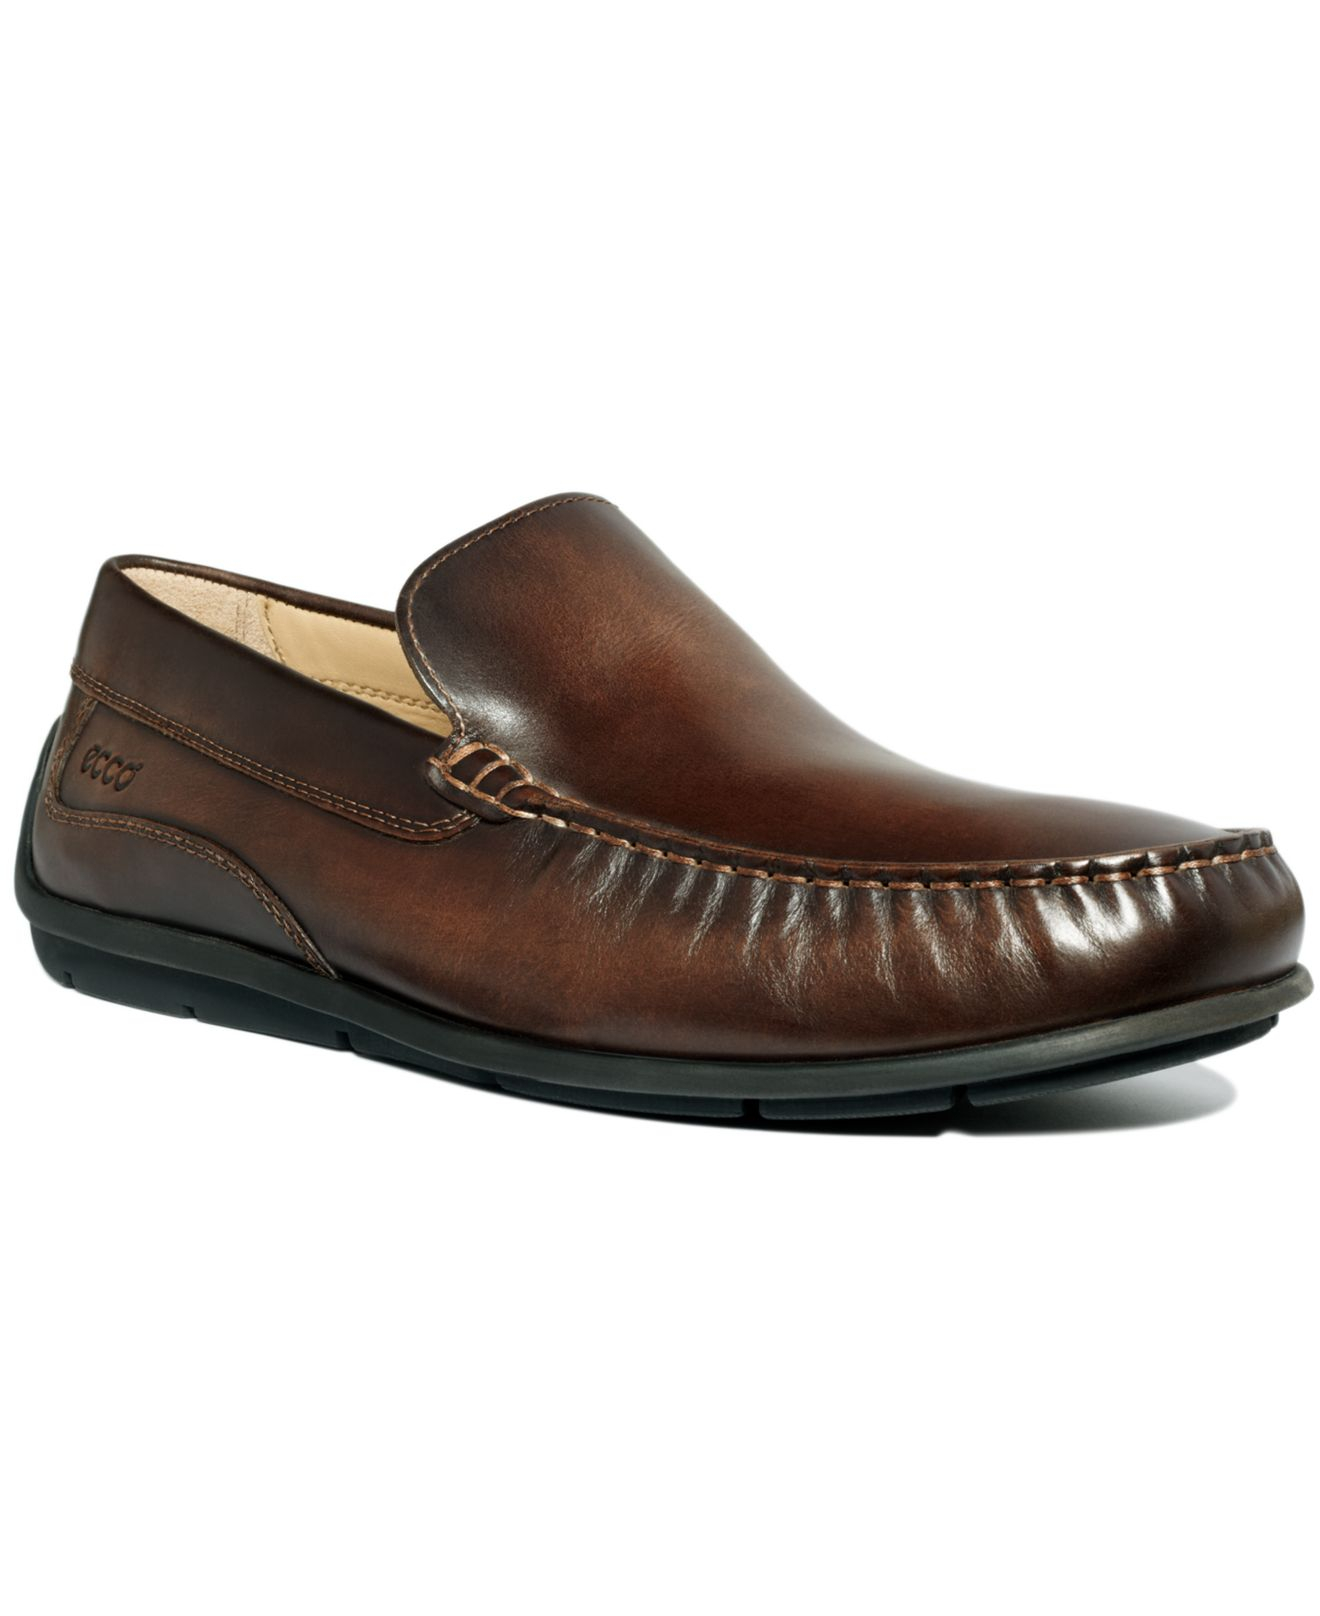 Vintage Land Rover Mens Loafer Driving Moccasin Brown: Ecco Men's Classic Driving Moccasins In Brown For Men